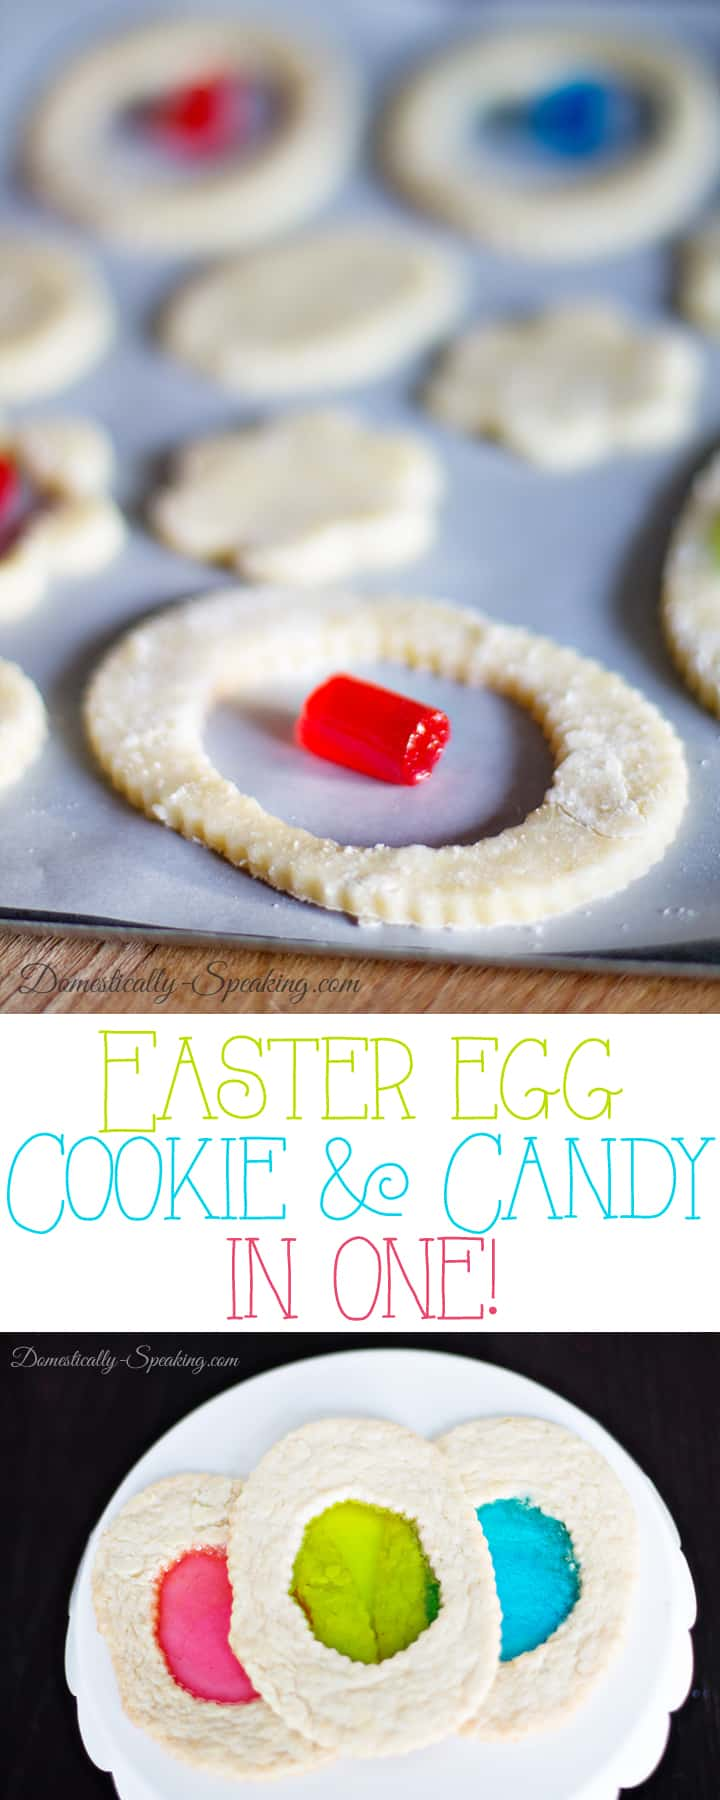 Easter Cookie and Candy in One a Spring Treat